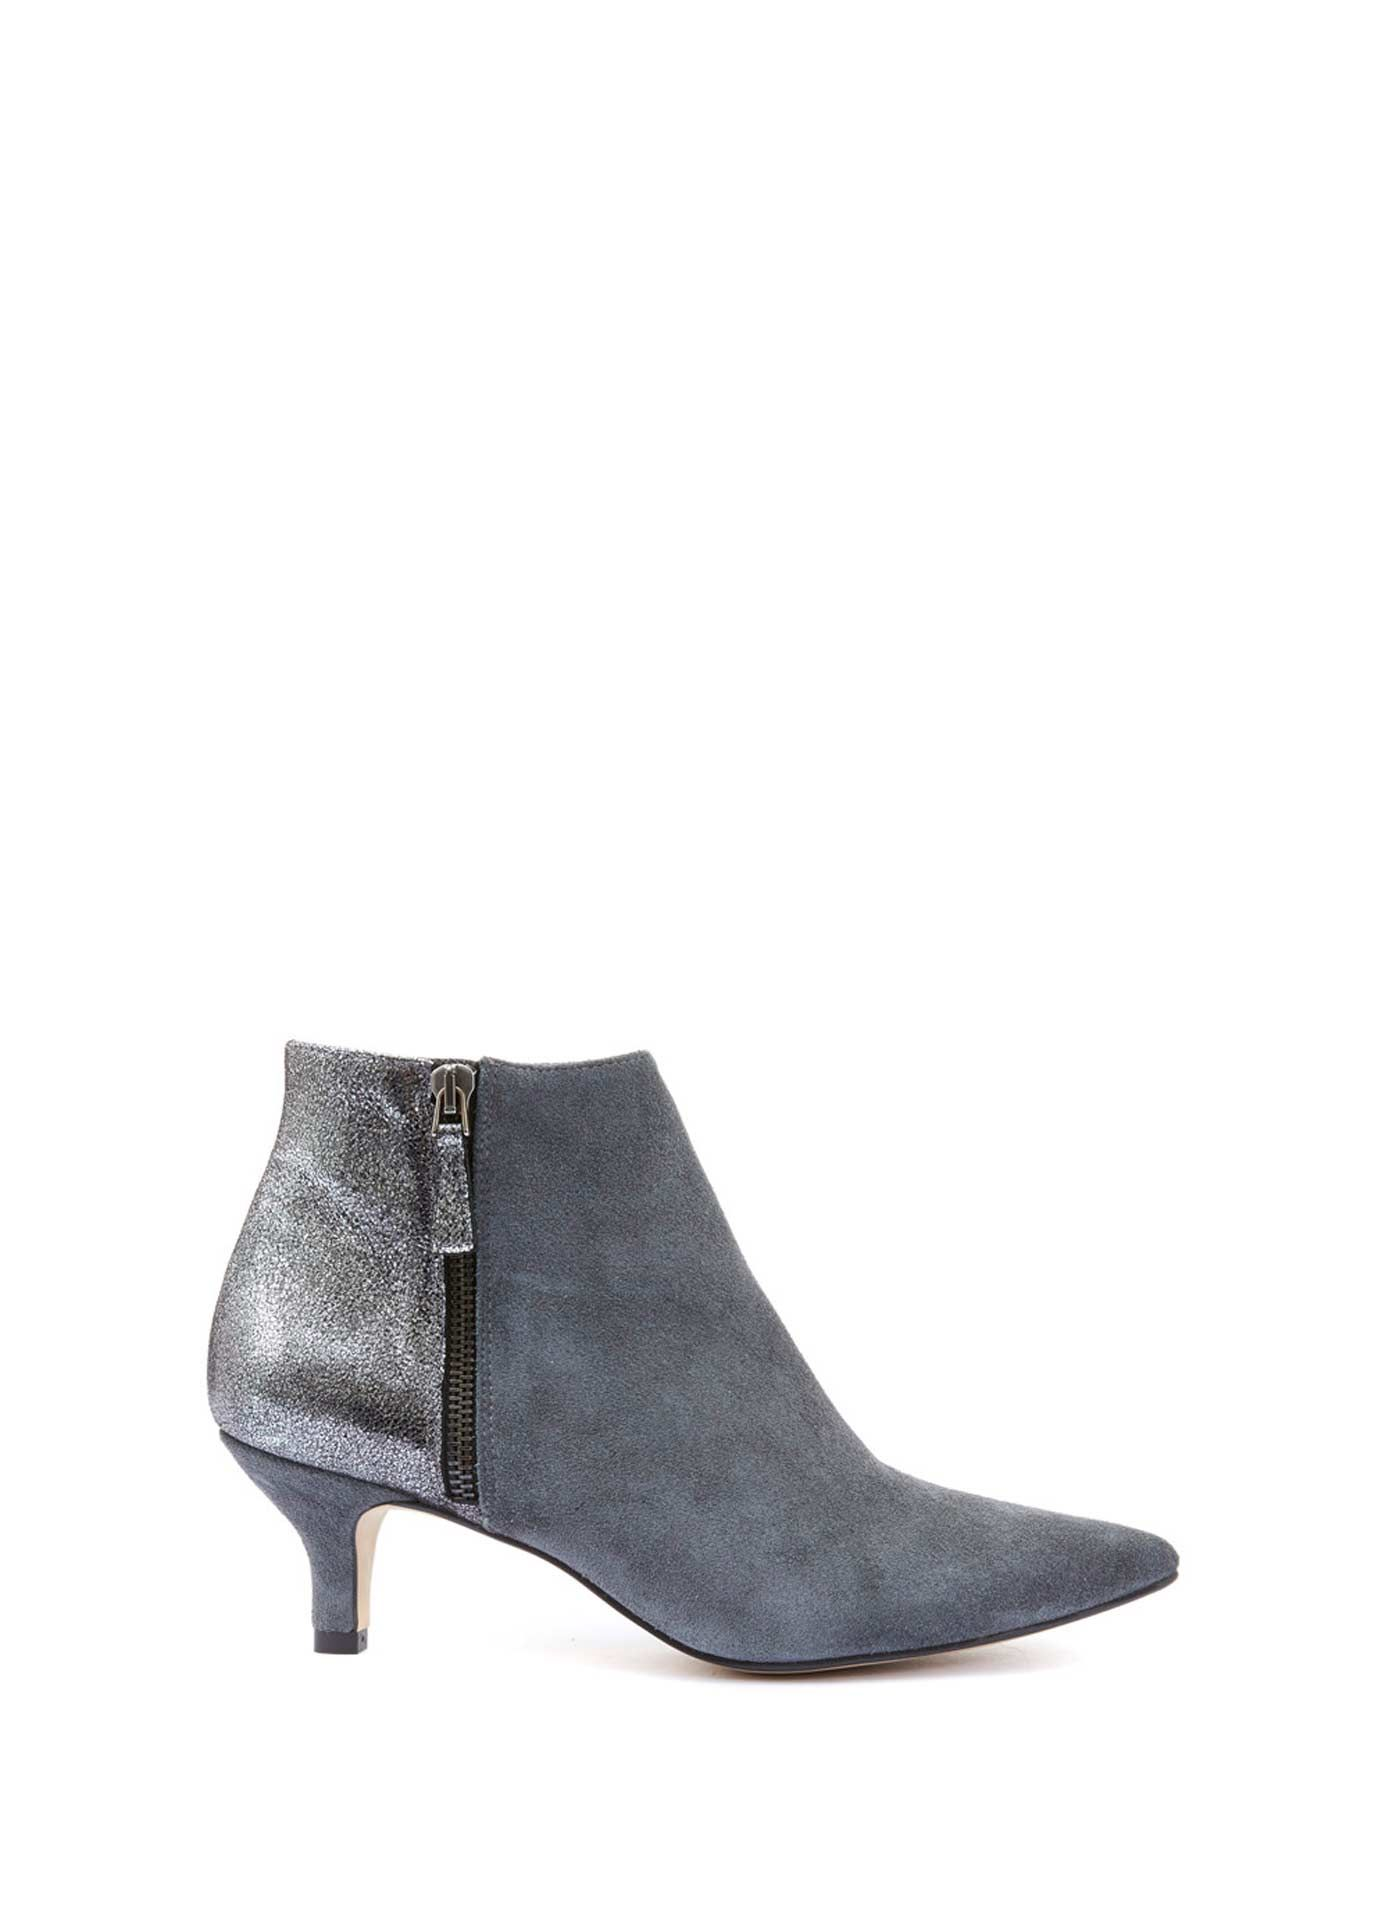 7e6efb39319 Grey Sami Ankle Boot | Clothes I'm eyeing up | Kitten heel boots ...